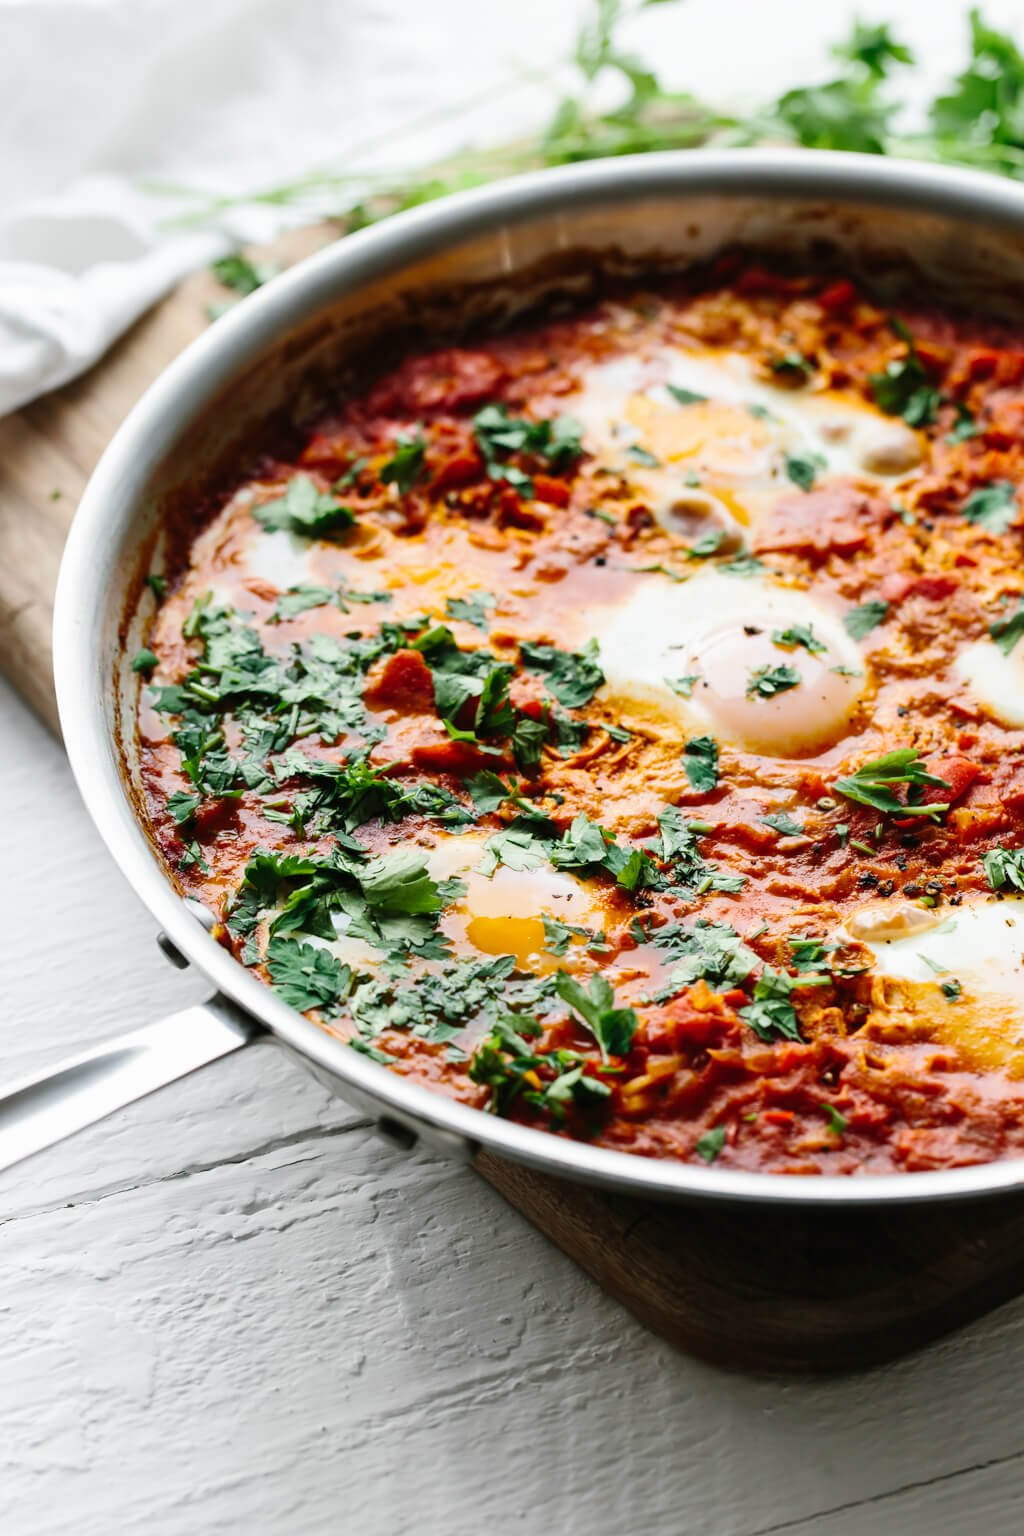 Shakshuka is an easy, healthy breakfast recipe in Israel and other parts of the Middle East and North Africa. It's a simple combination of simmering tomatoes, onions, garlic, spices and gently poached eggs.